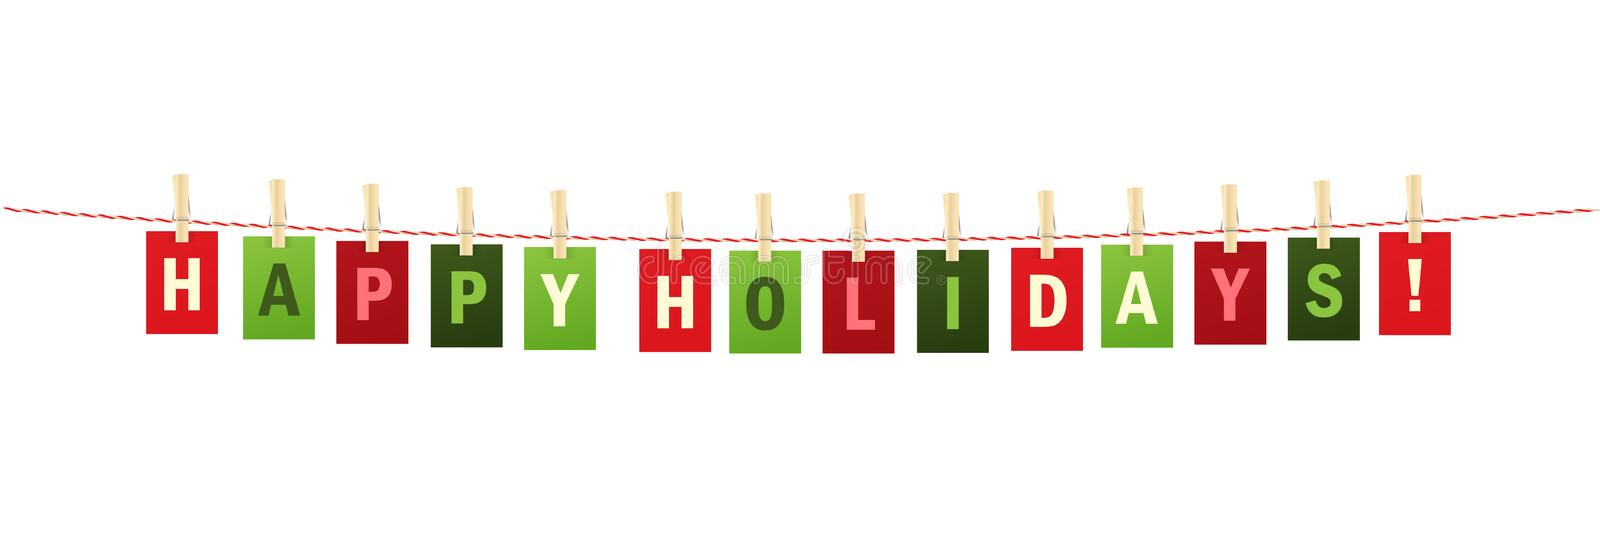 HAPPY HOLIDAYS colorful letters pinned to string with pegs stock images